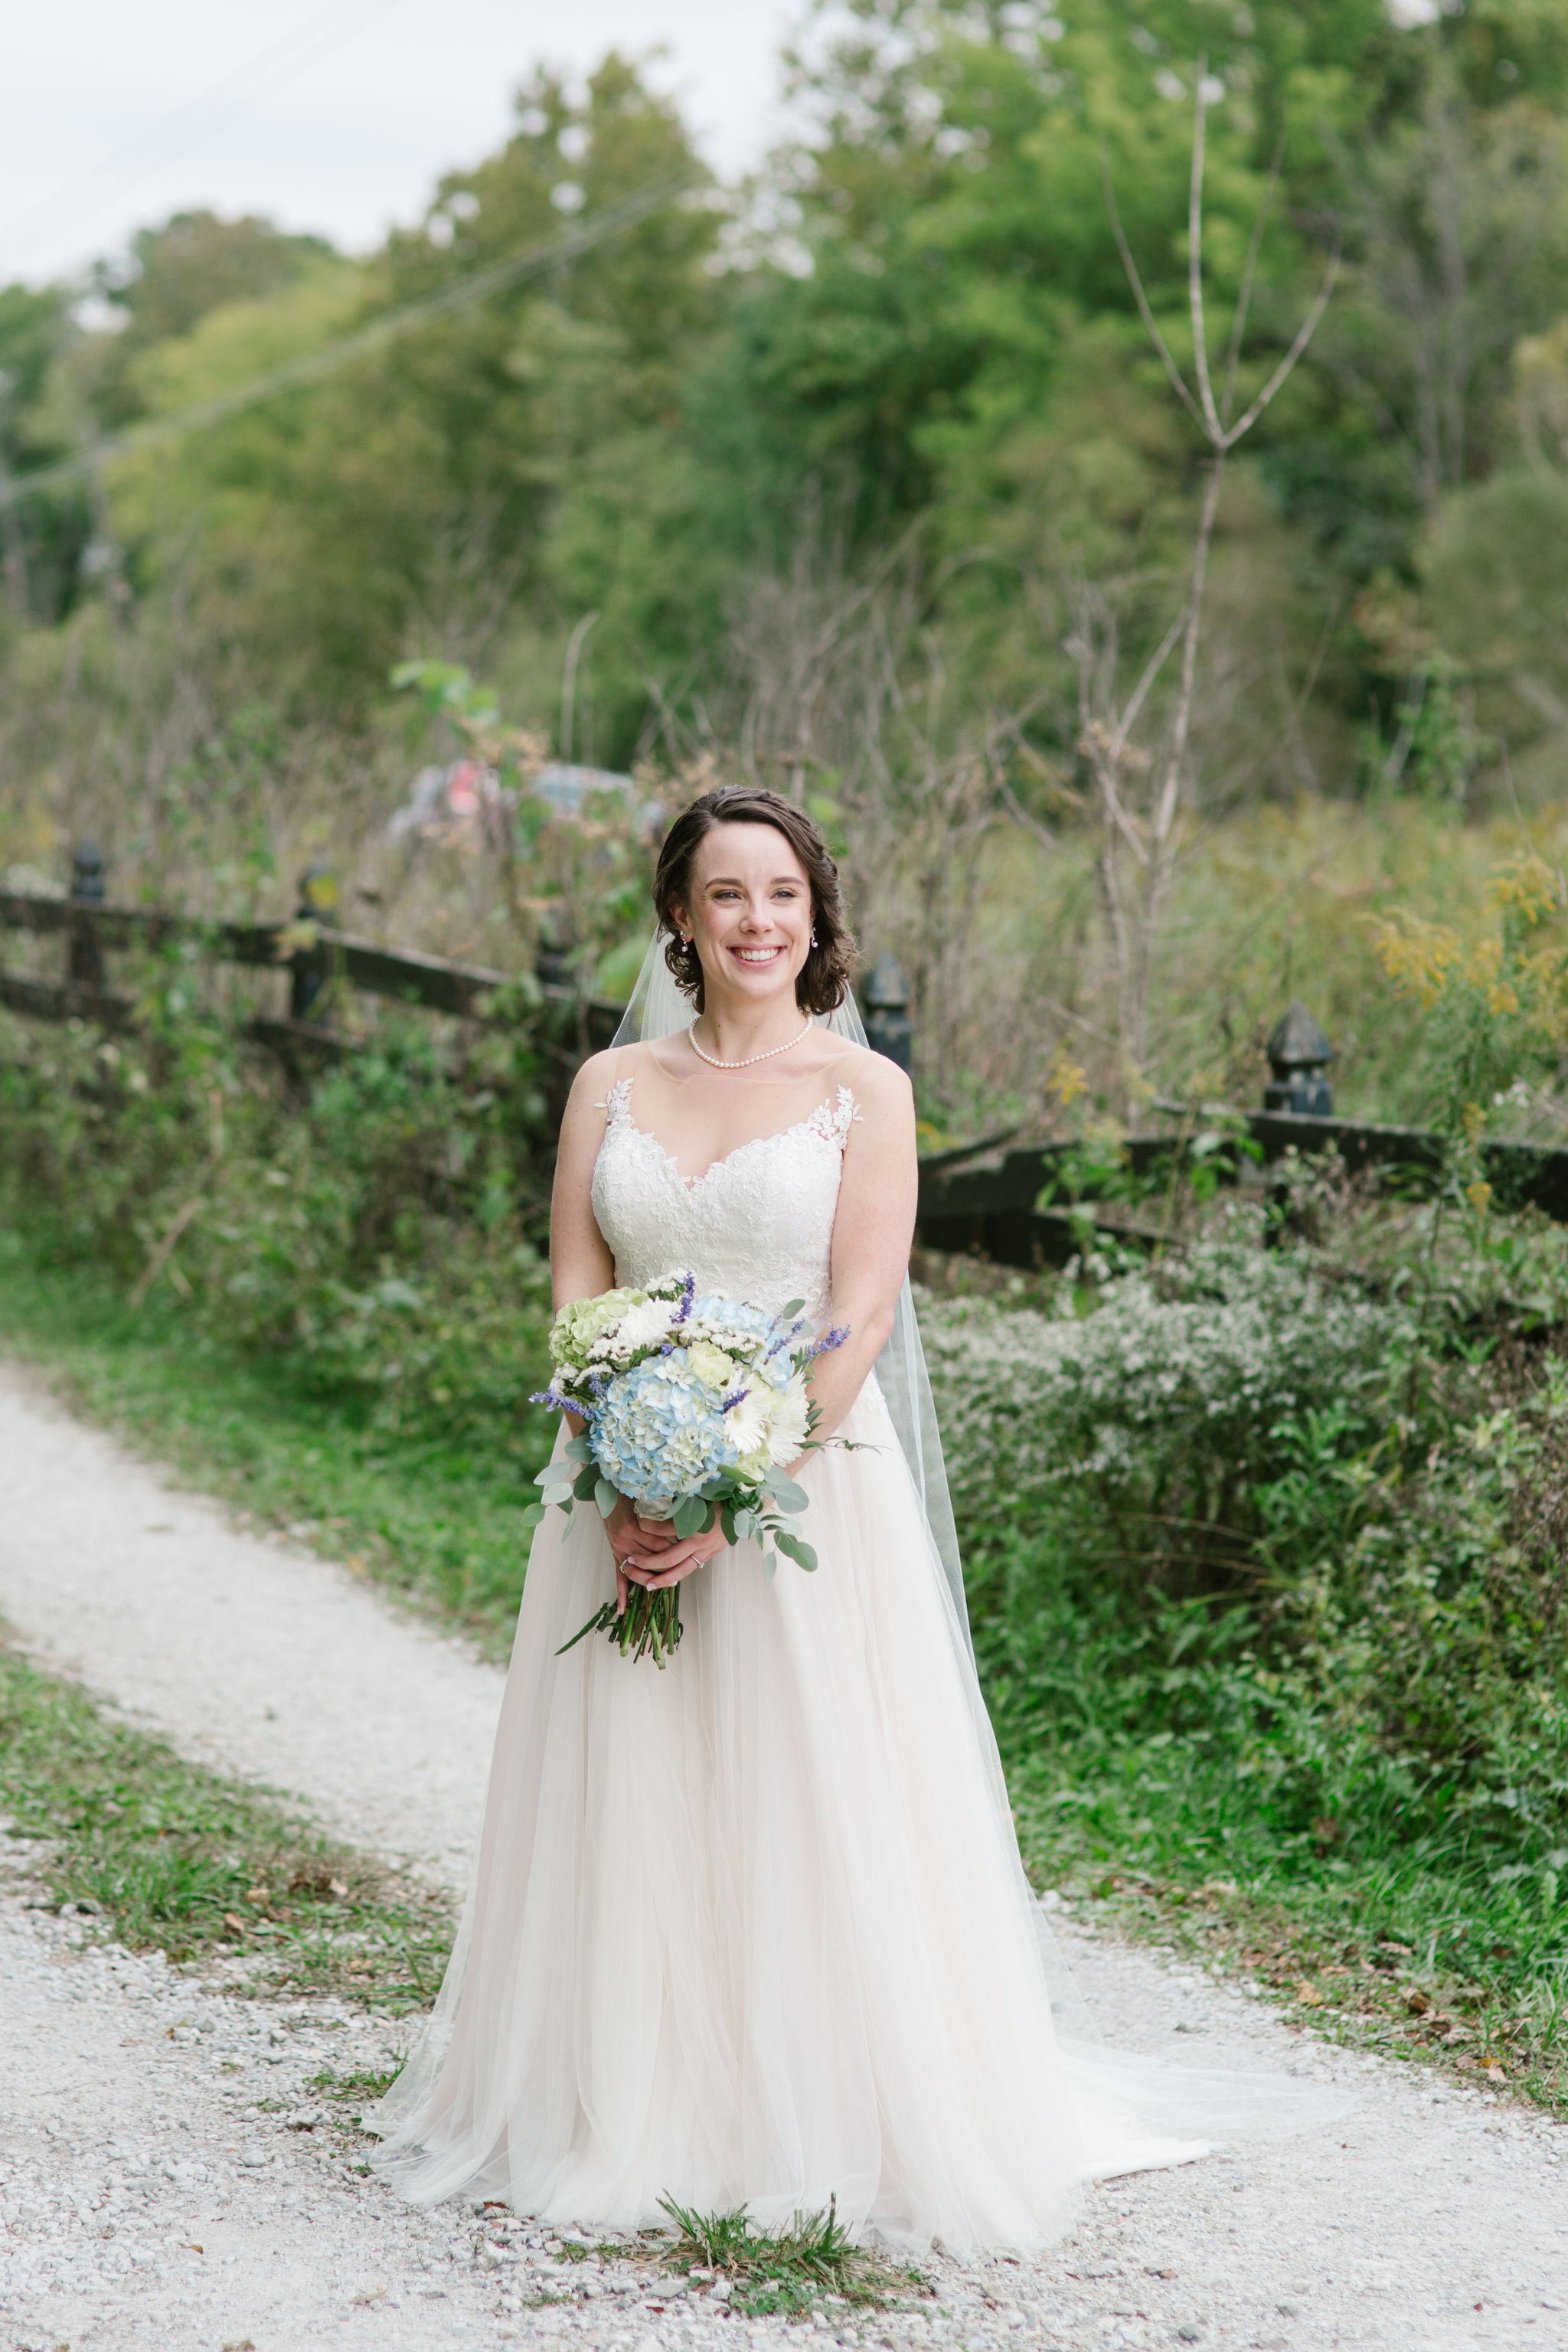 Kellsey&JasonWedding(Final)-132.jpg